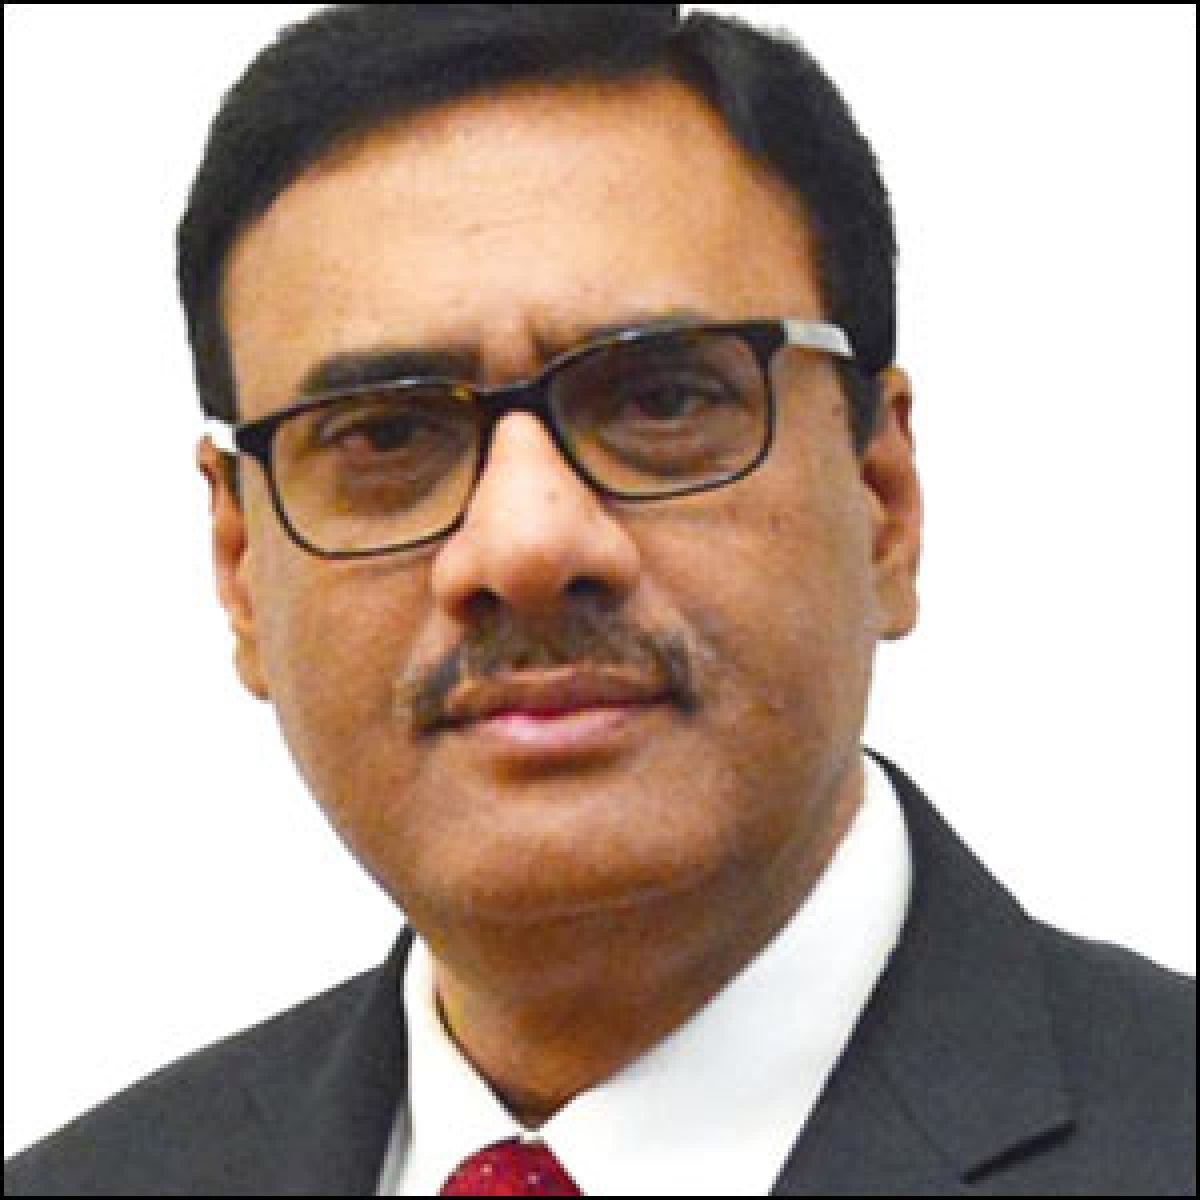 ACC appoints Sridhar Balakrishnan as chief commercial officer